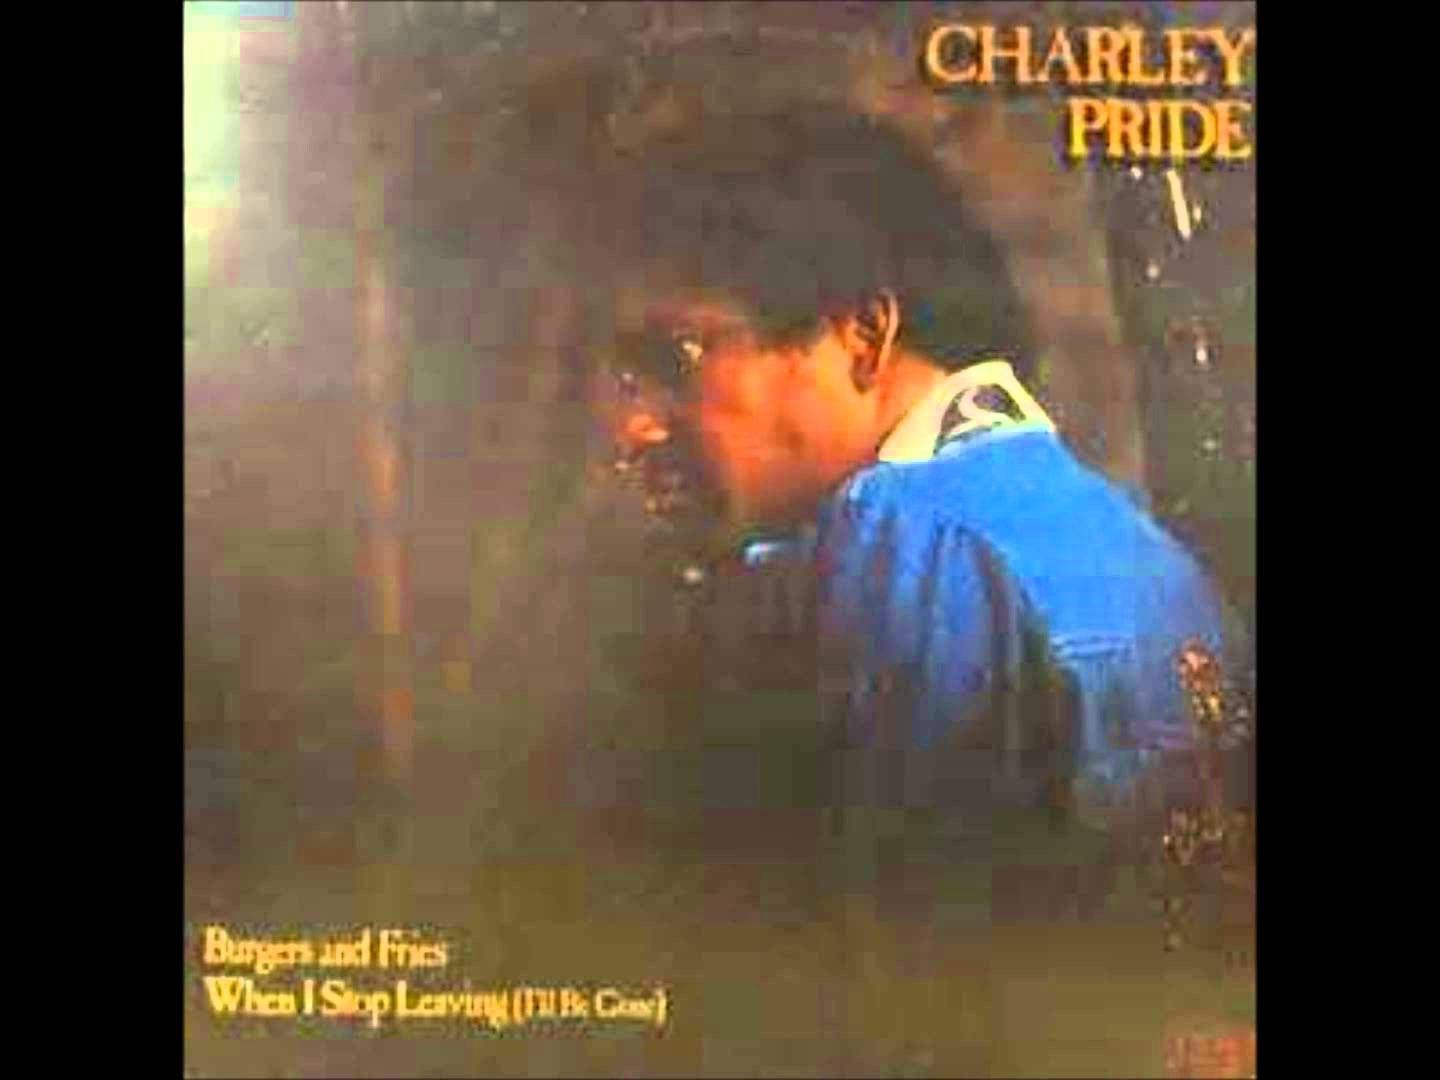 Charlie Pride Hits Great charley pride - burger and fries | favorite music | pinterest